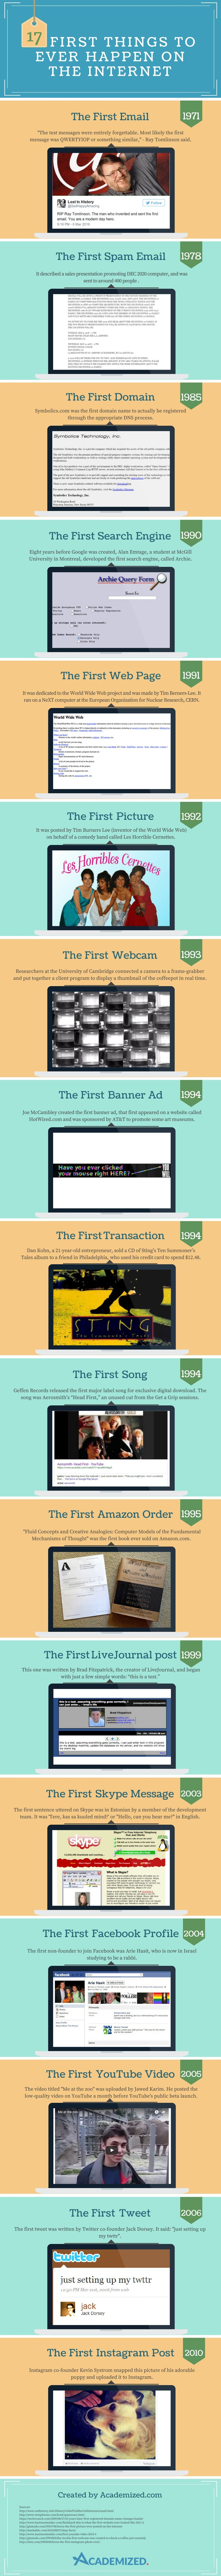 First Times Of Everything On The Internet - Infographic